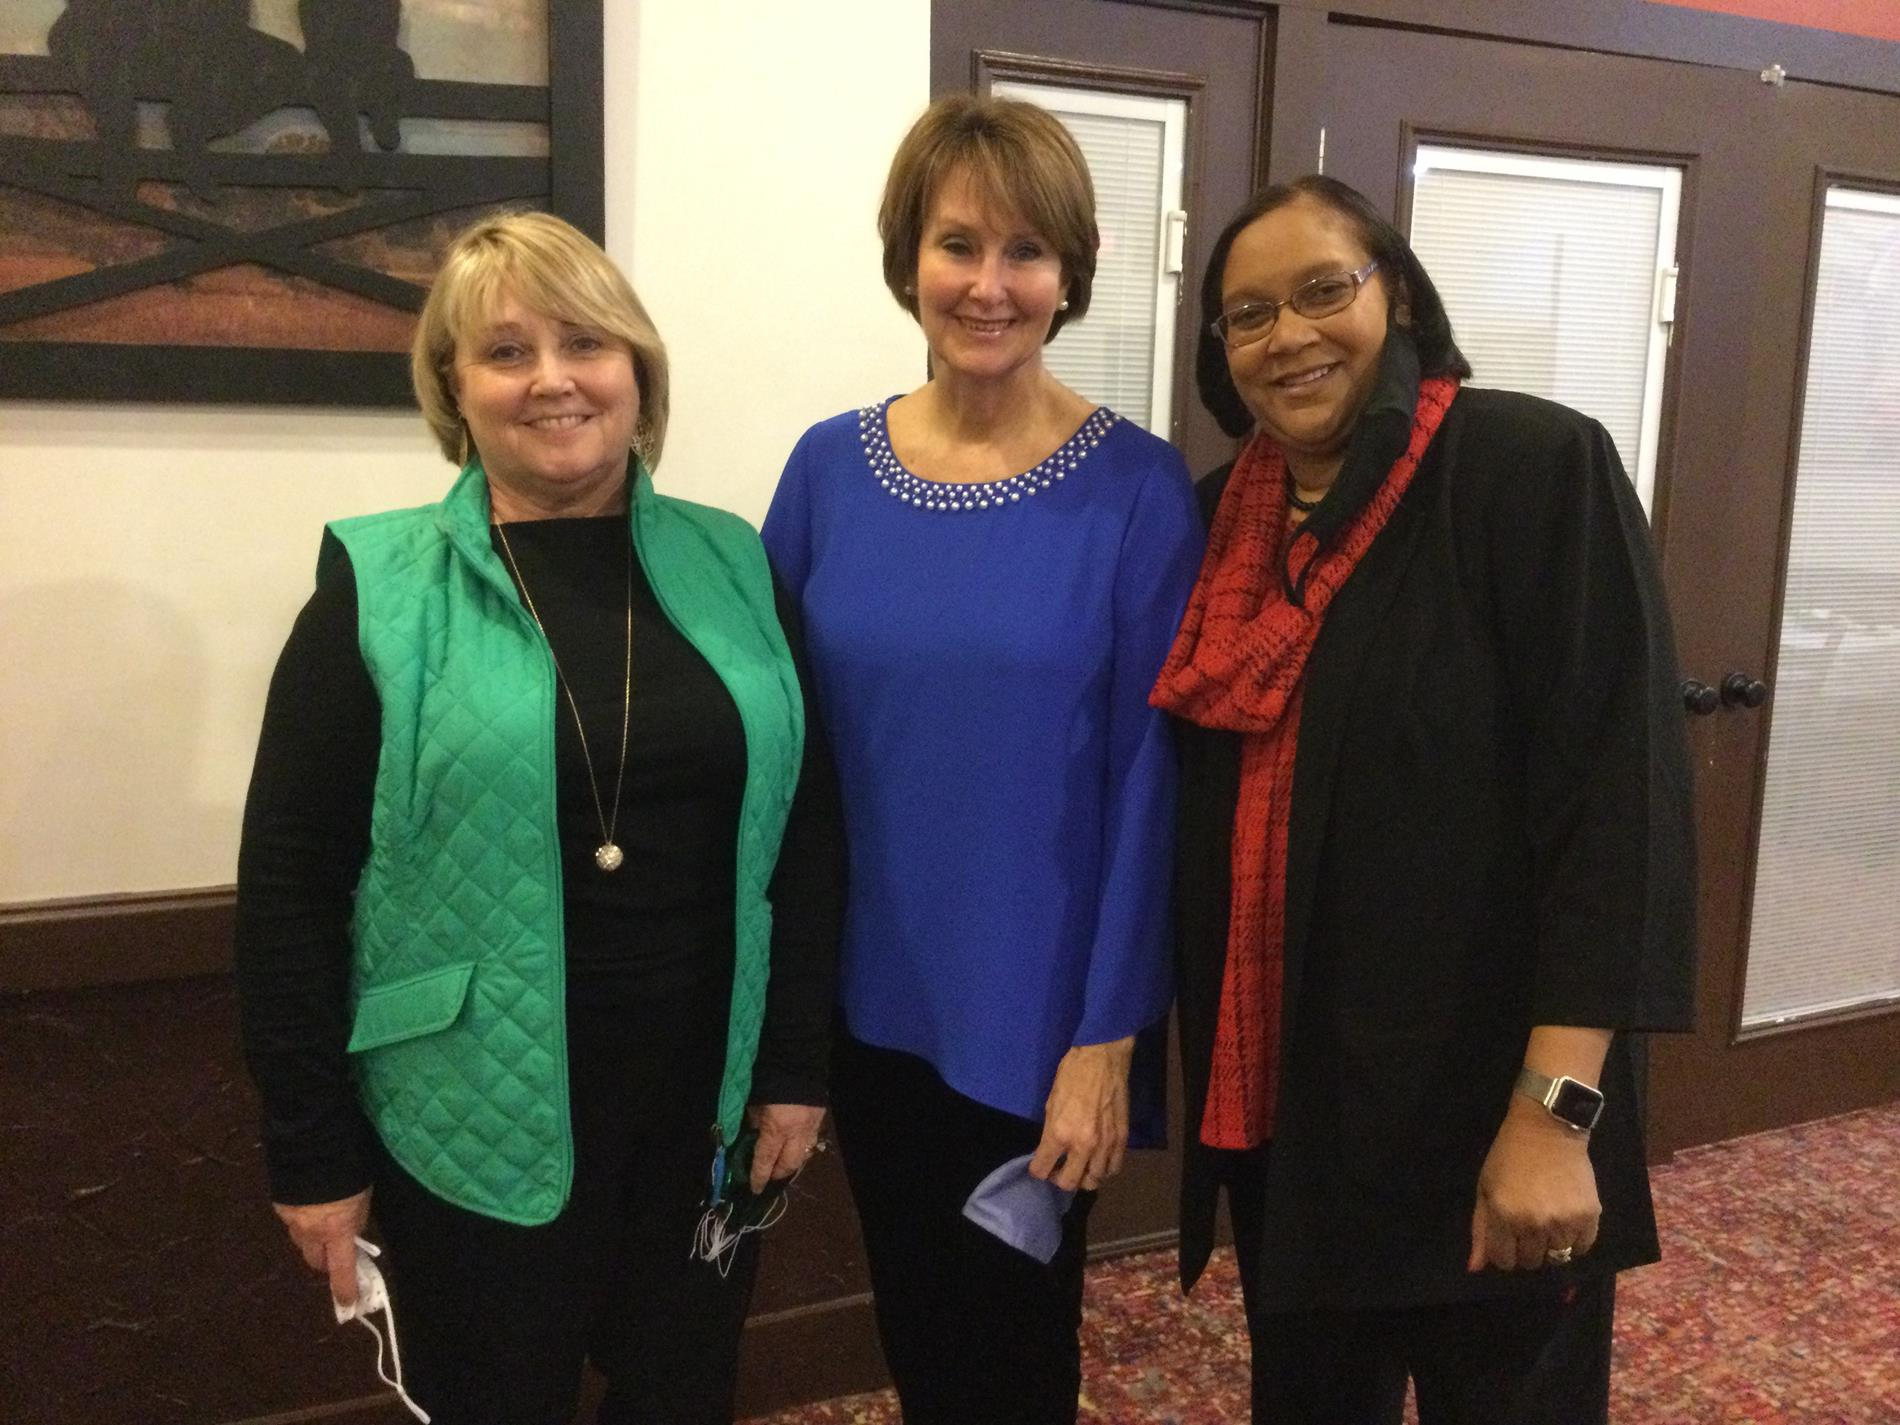 Becky Bigelow, Carol Bailey, Sharon Yarber